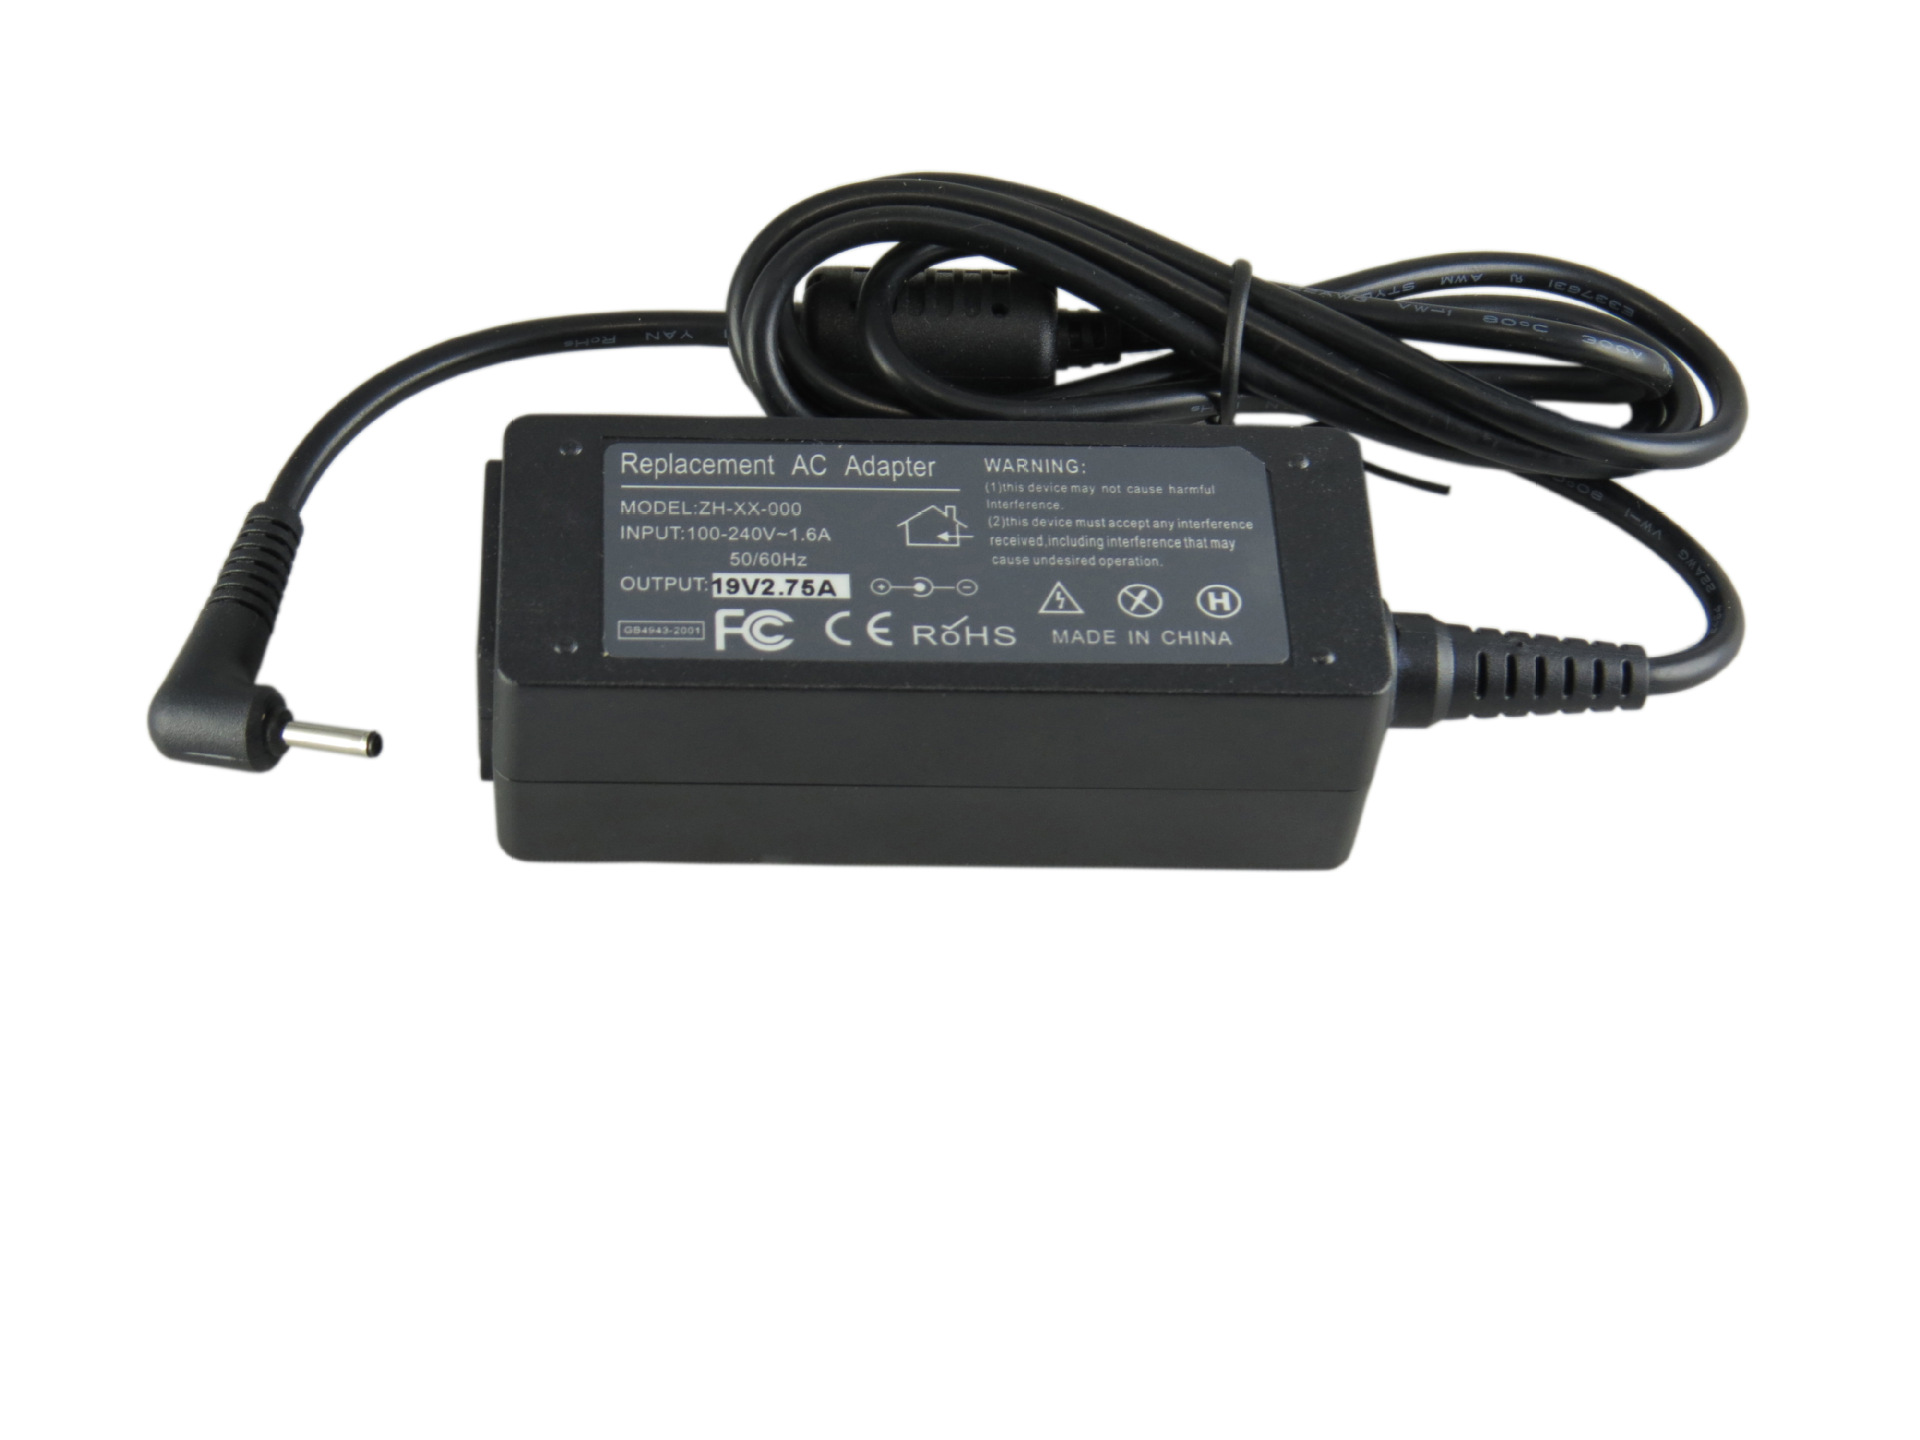 Caricabatteria 19V 2.1A 40W AC Laptop Power Adapter per ASUS Eee PC 1001HA 1001P 1001PX 1005HA 1101HA 1008HA 2.5mm * 0.7mm